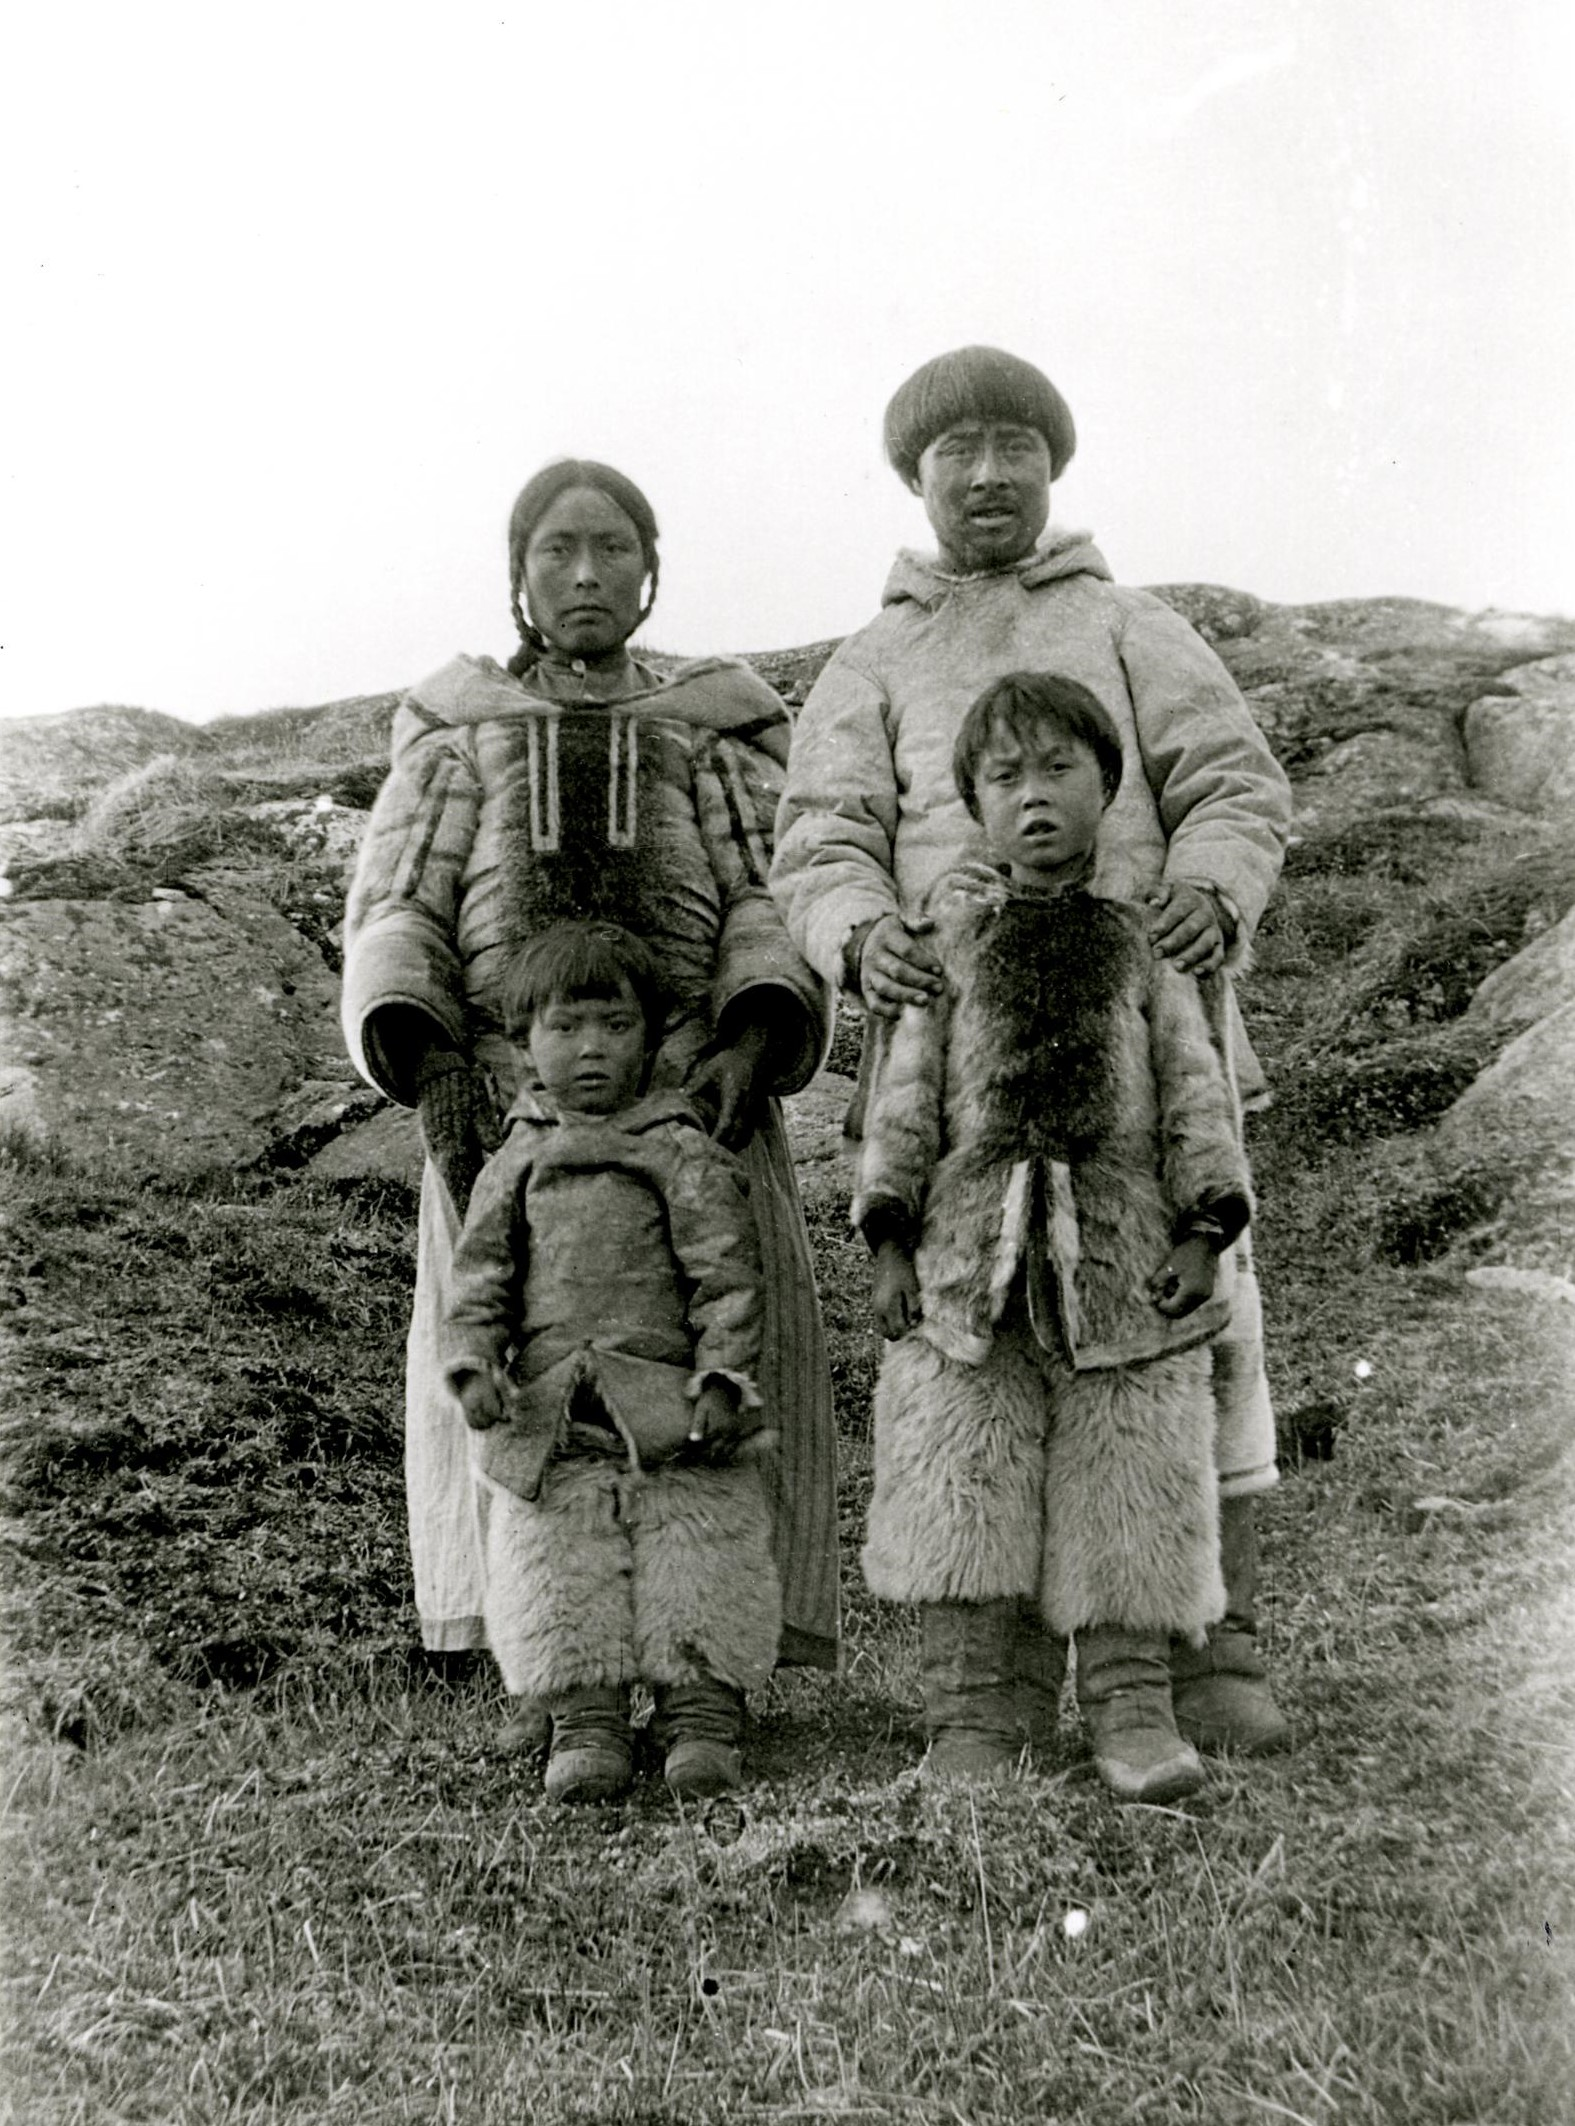 Black and white photograph of an Inuit man, woman, and two children standing outdoors. The woman wears sections of her hair in plaits and tied back, a parka, and a long skirt. The man wears a parka, trousers, and boots. Both children stand in front of the adults, and wear fur parkas, trousers, and boots.